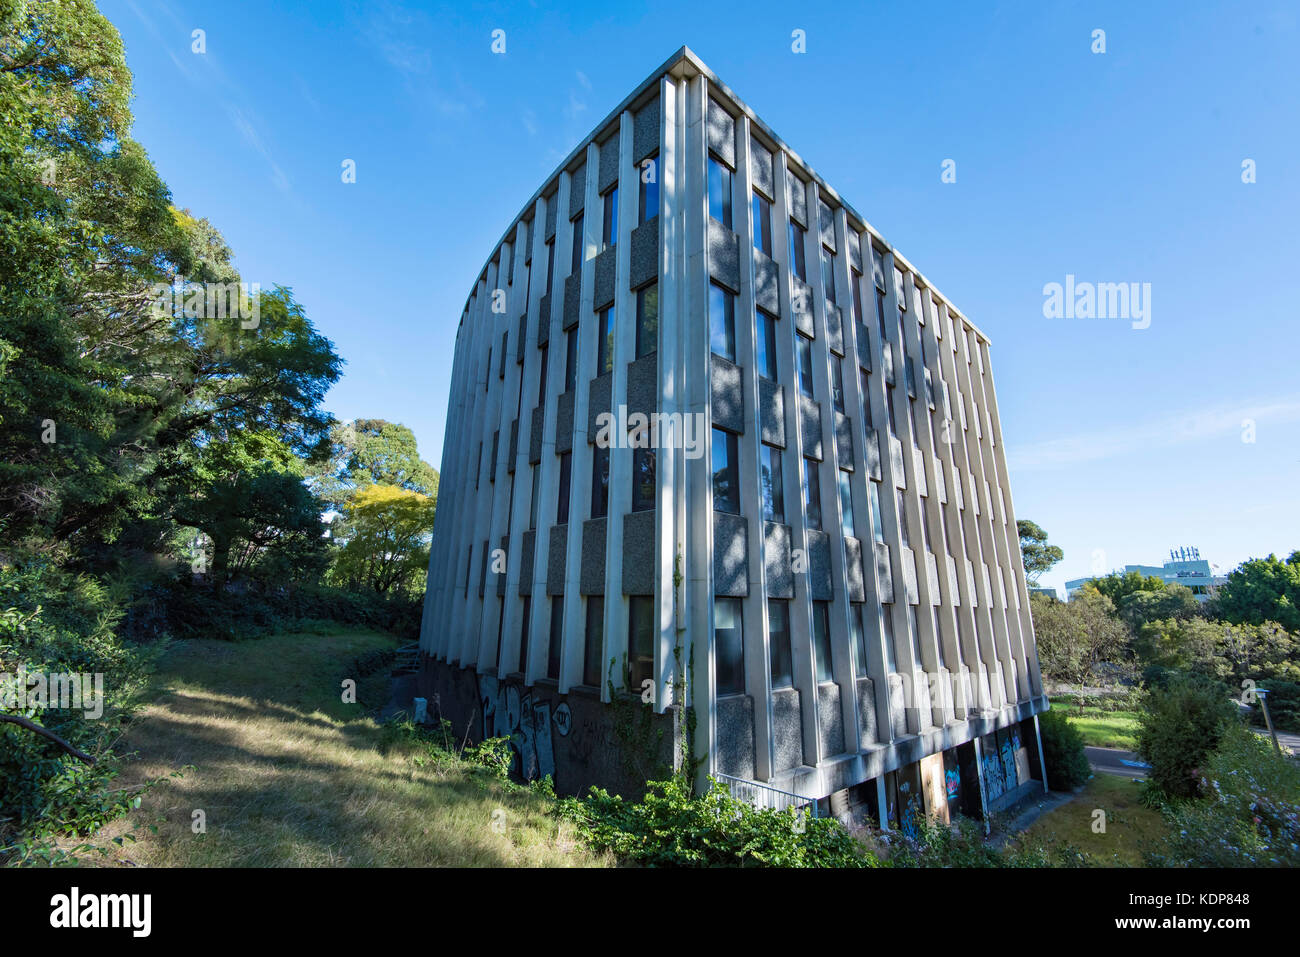 The former 3M building in Pymble, Sydney, Australia a curviloinear post war international style building - Stock Image